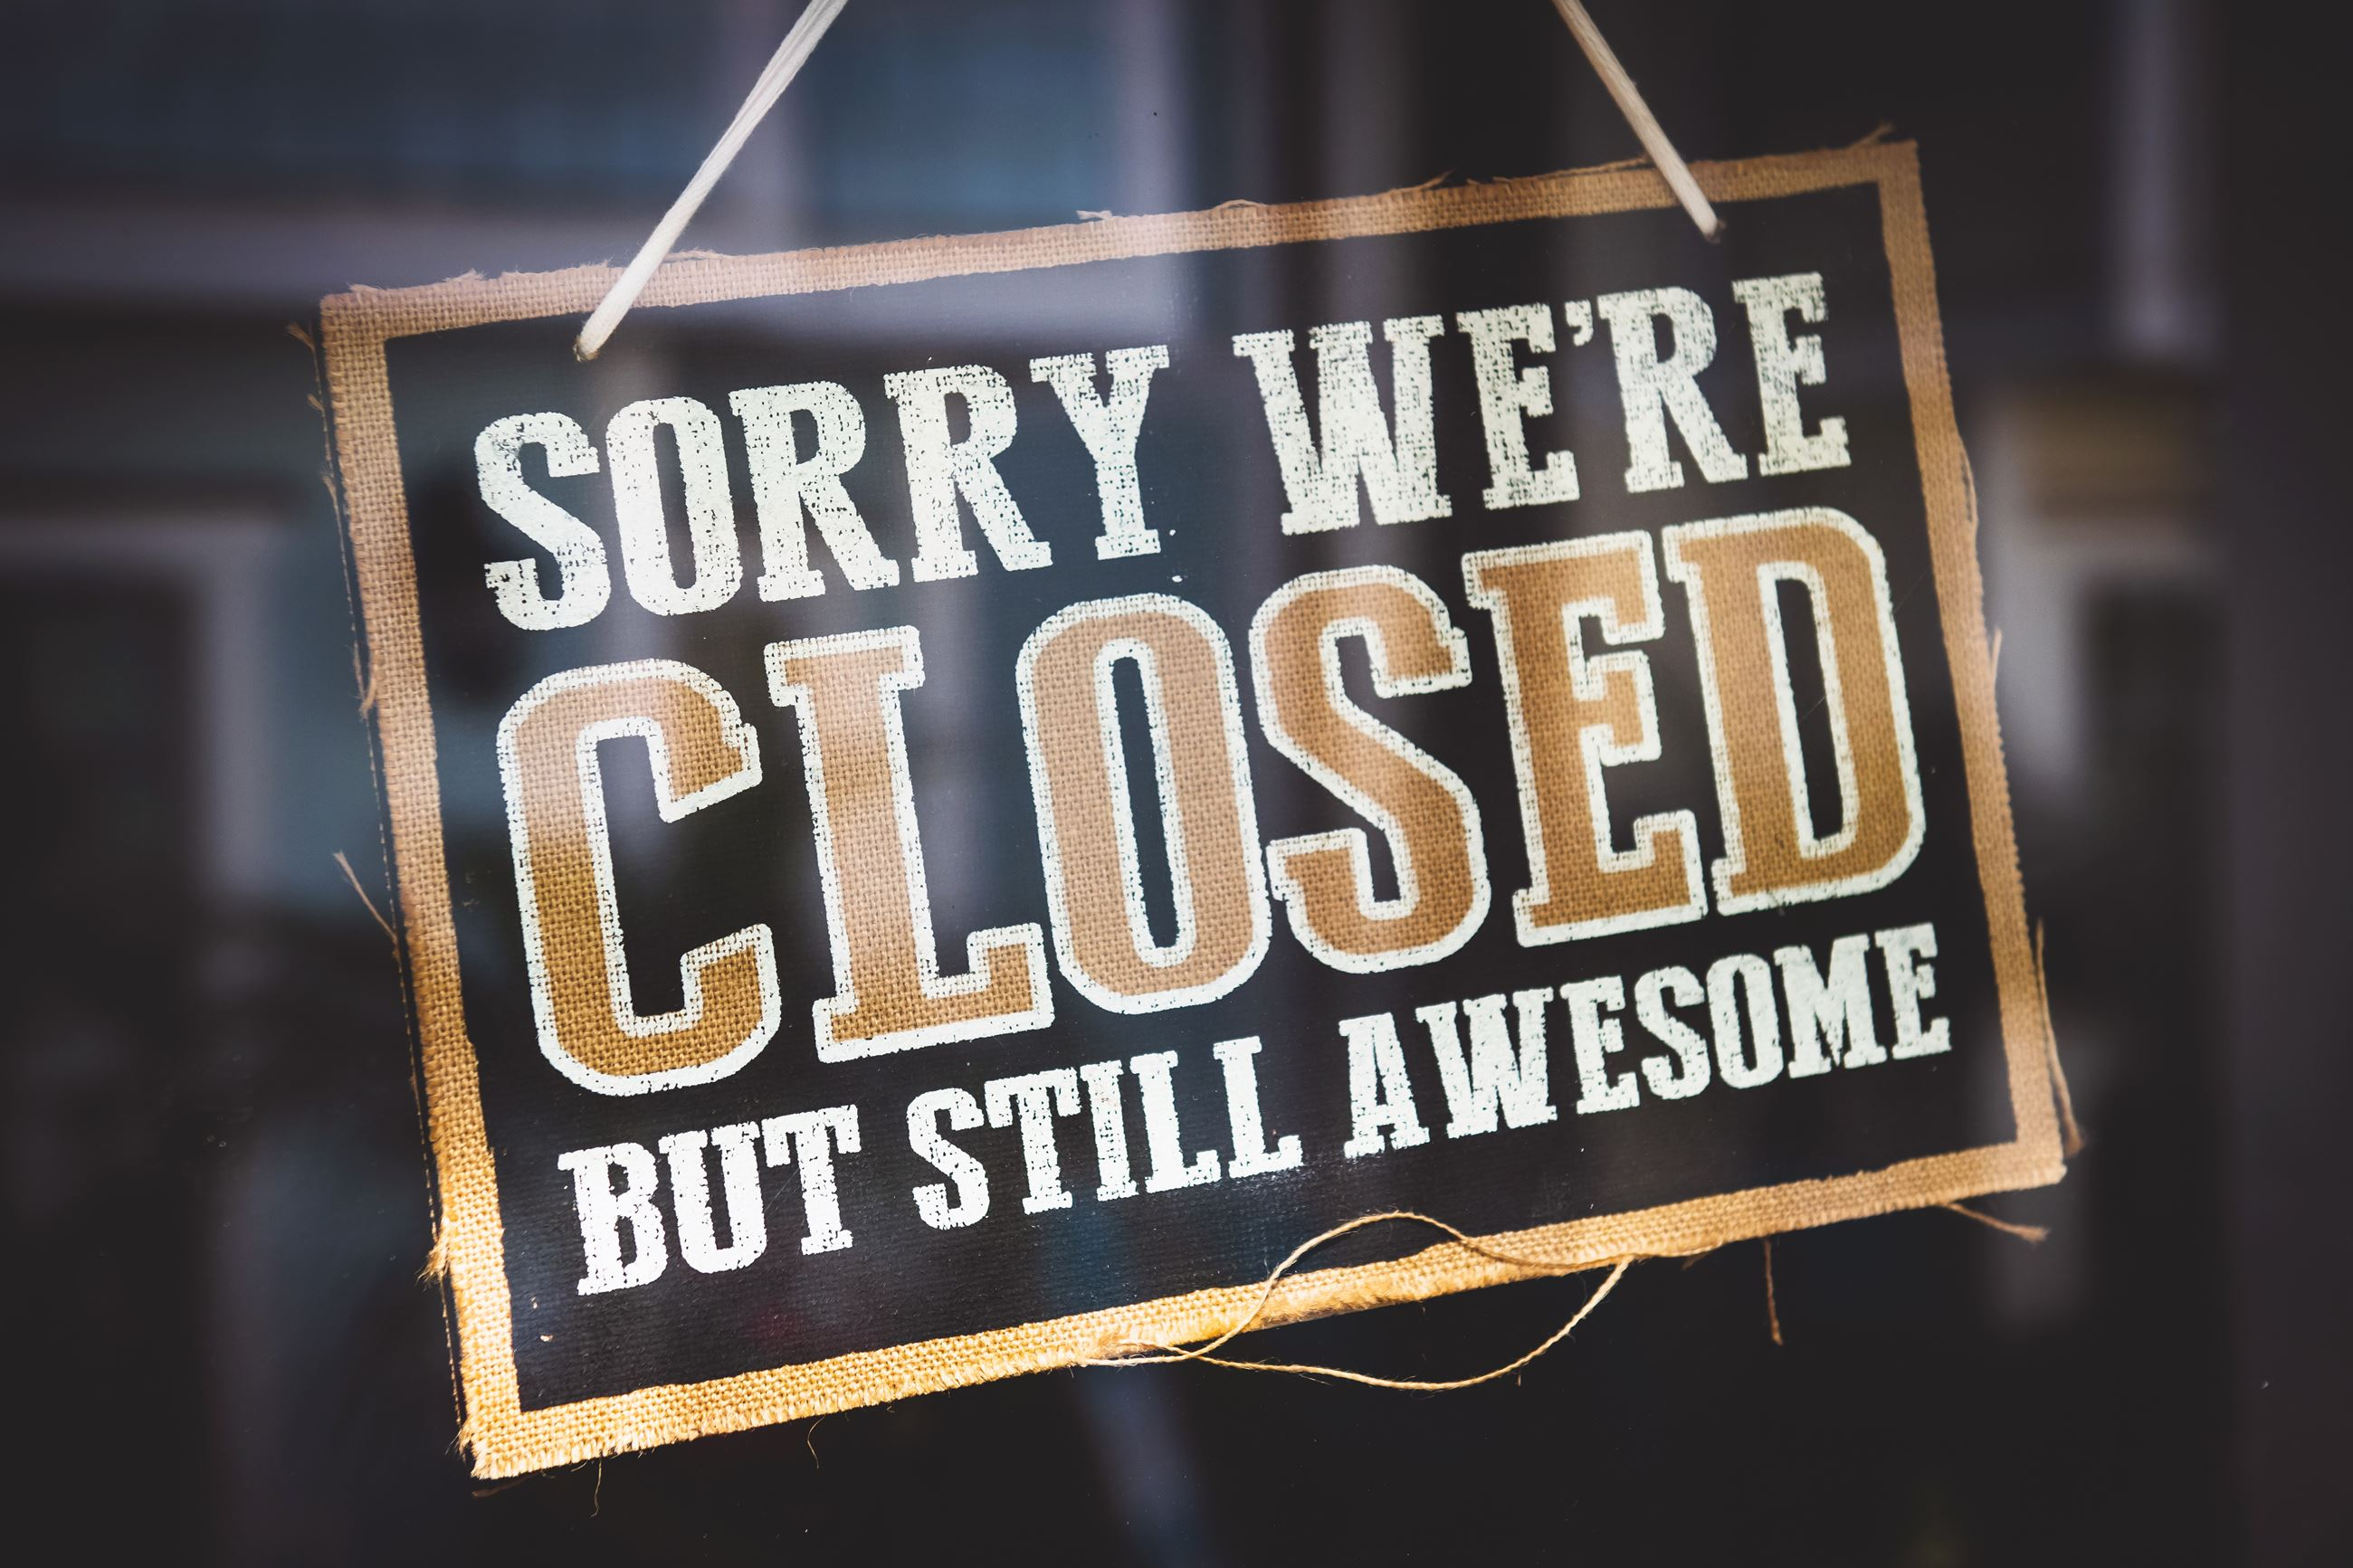 Sorry we're closed but still awesome sign on shop window